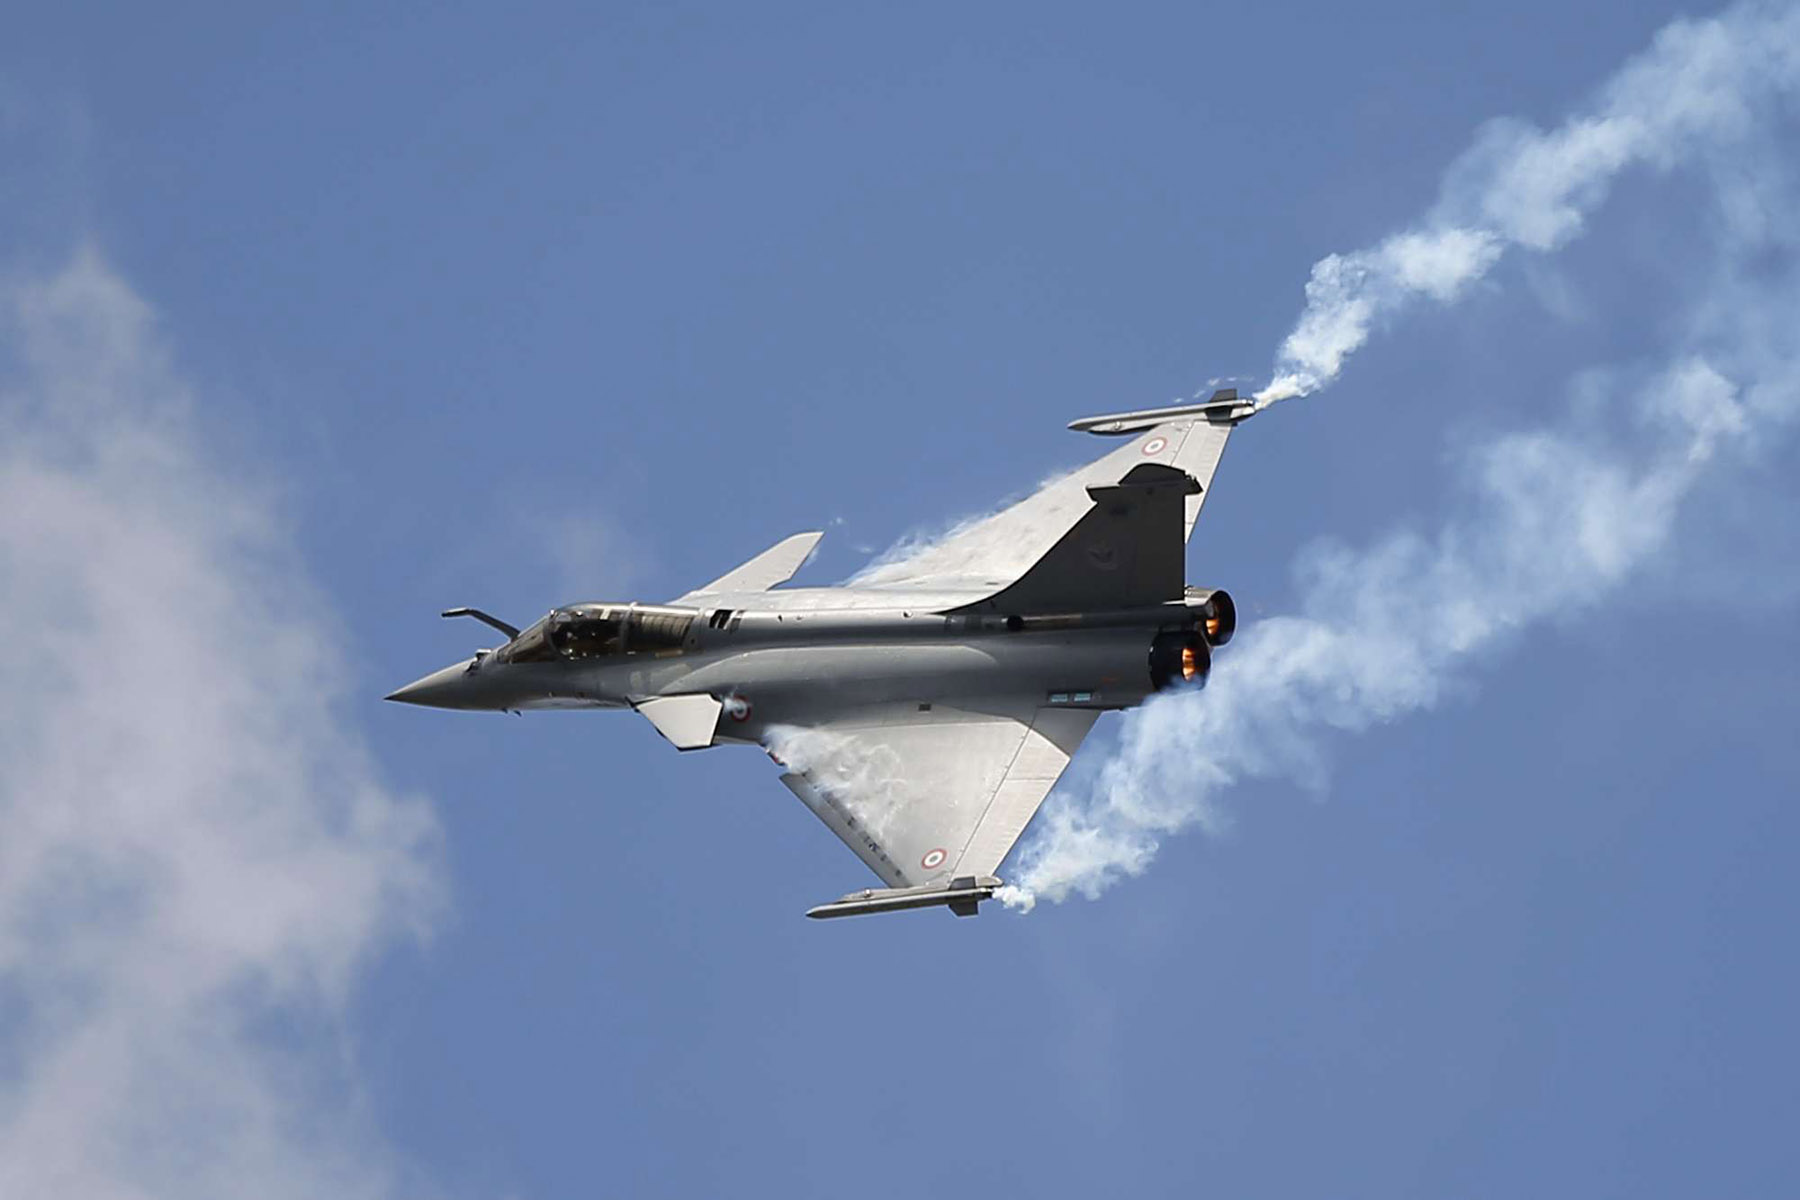 A Rafale jet aircraft performs a demonstration flight at the Paris Air Show, in Le Bourget airport, north of Paris. (AP)